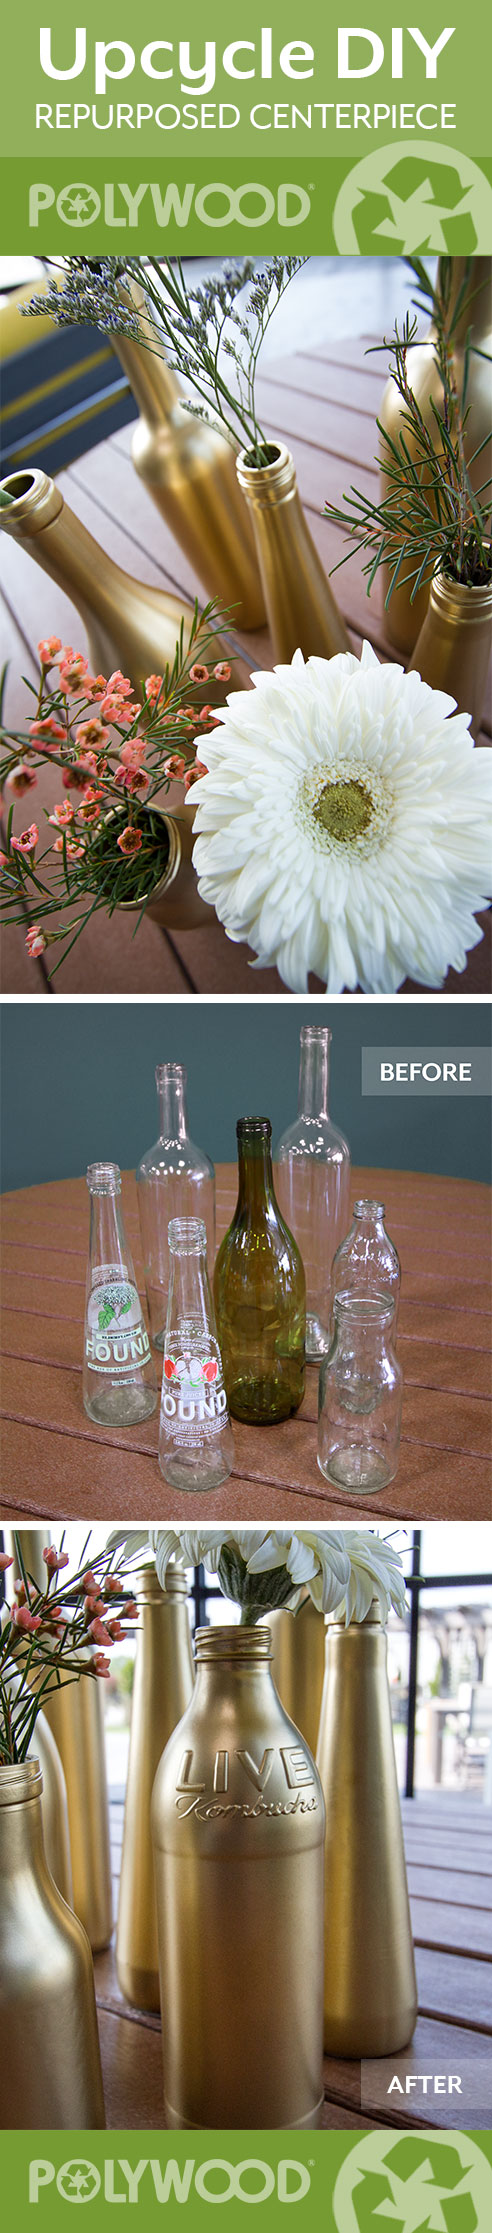 DIY: How-to Turn Recycled Glass Bottles Into A Beautiful Centerpiece, POLYWOOD Blog